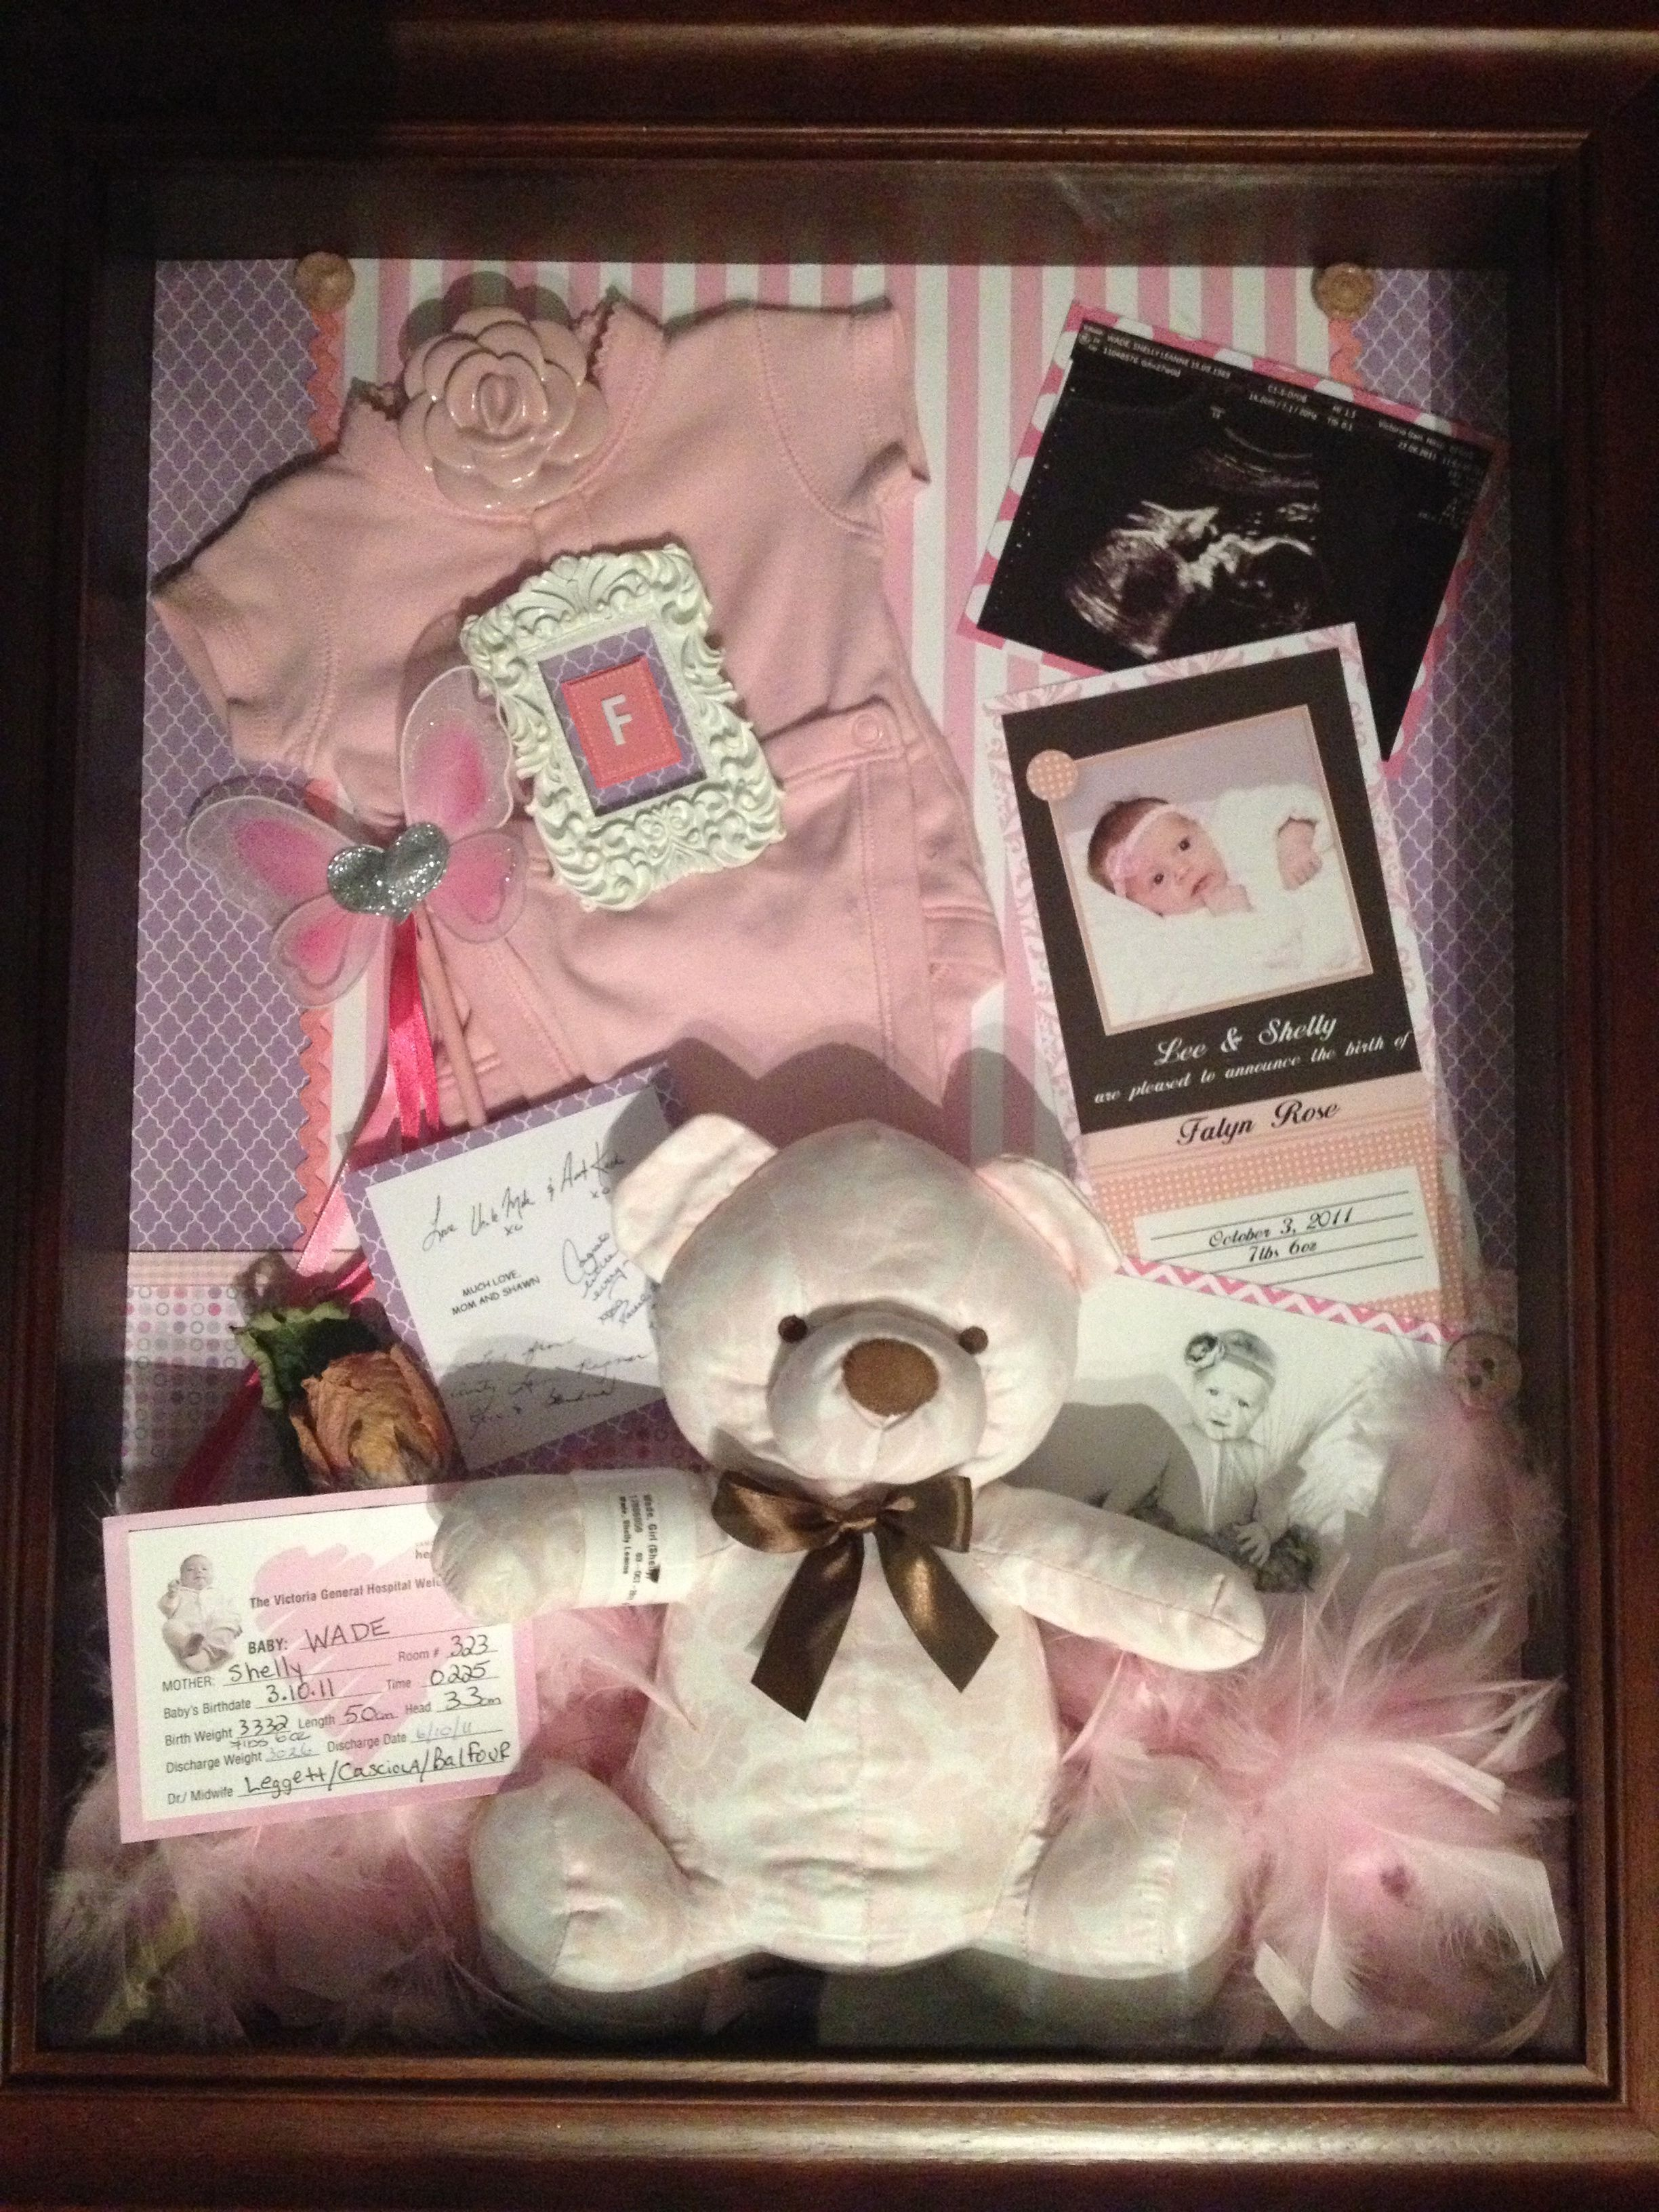 custom order baby keepsake shadow boxes from lovely studio west coast gift cards also available. Black Bedroom Furniture Sets. Home Design Ideas